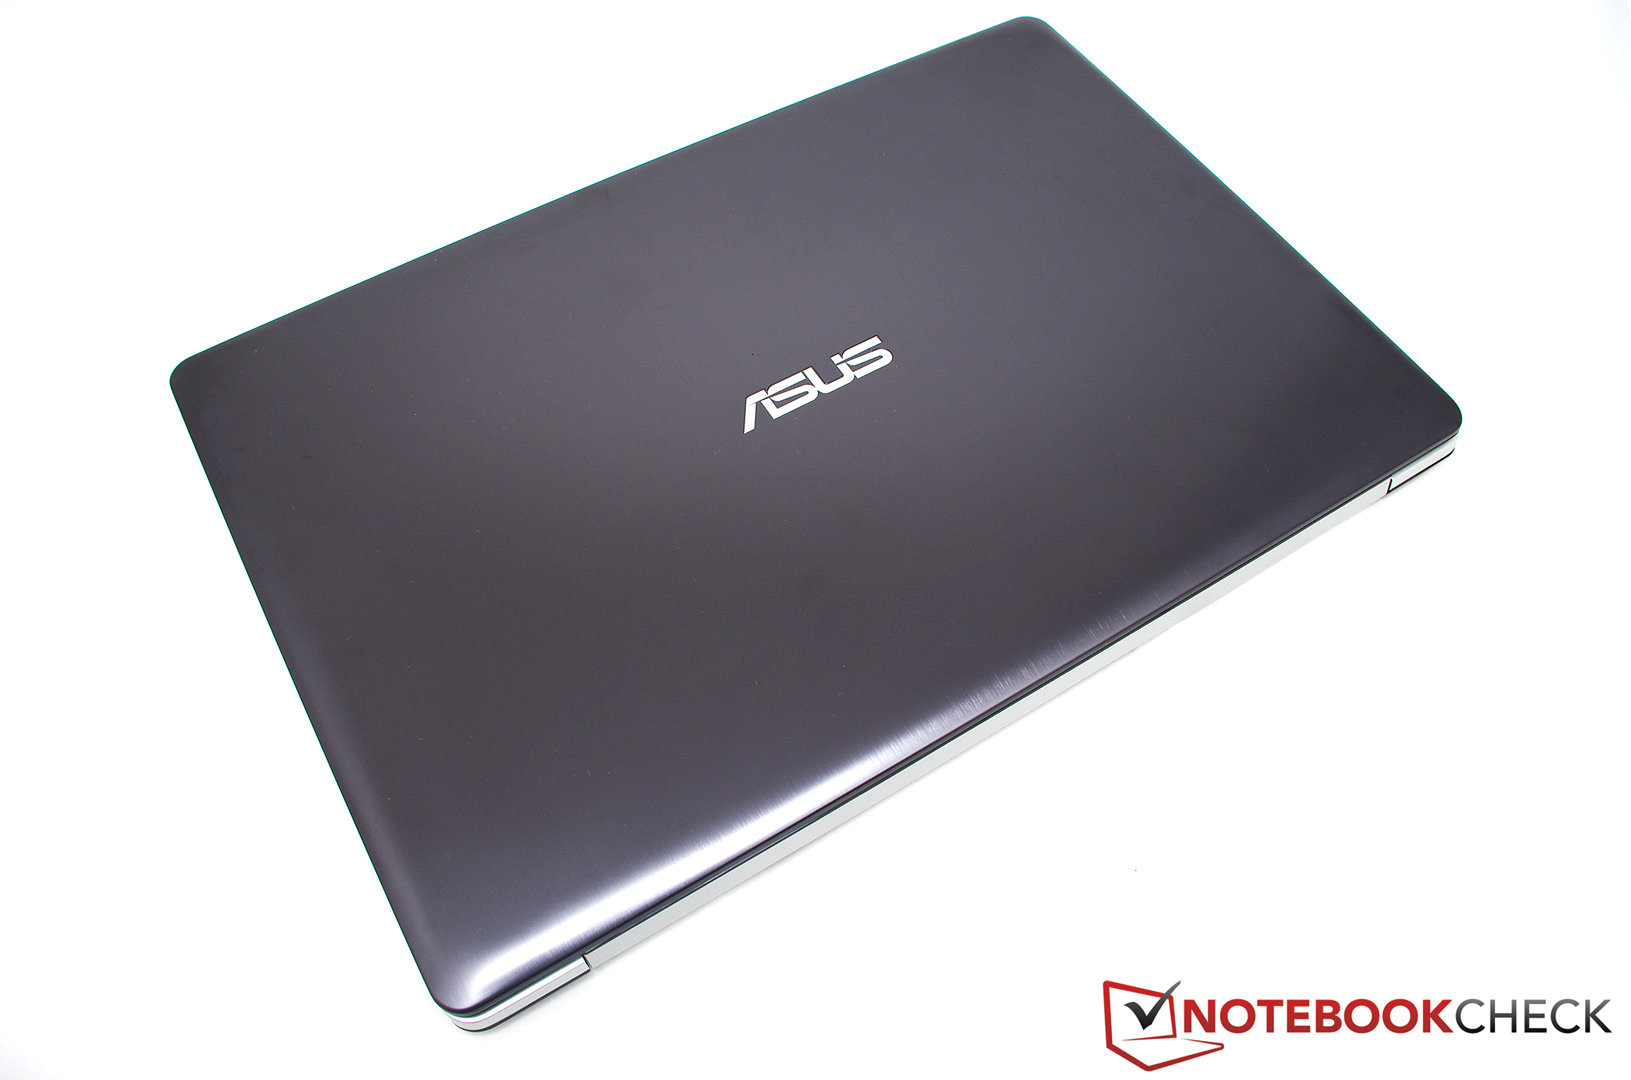 ASUS VIVOBOOK S550CA ATHEROS WLAN DRIVER FOR WINDOWS 7